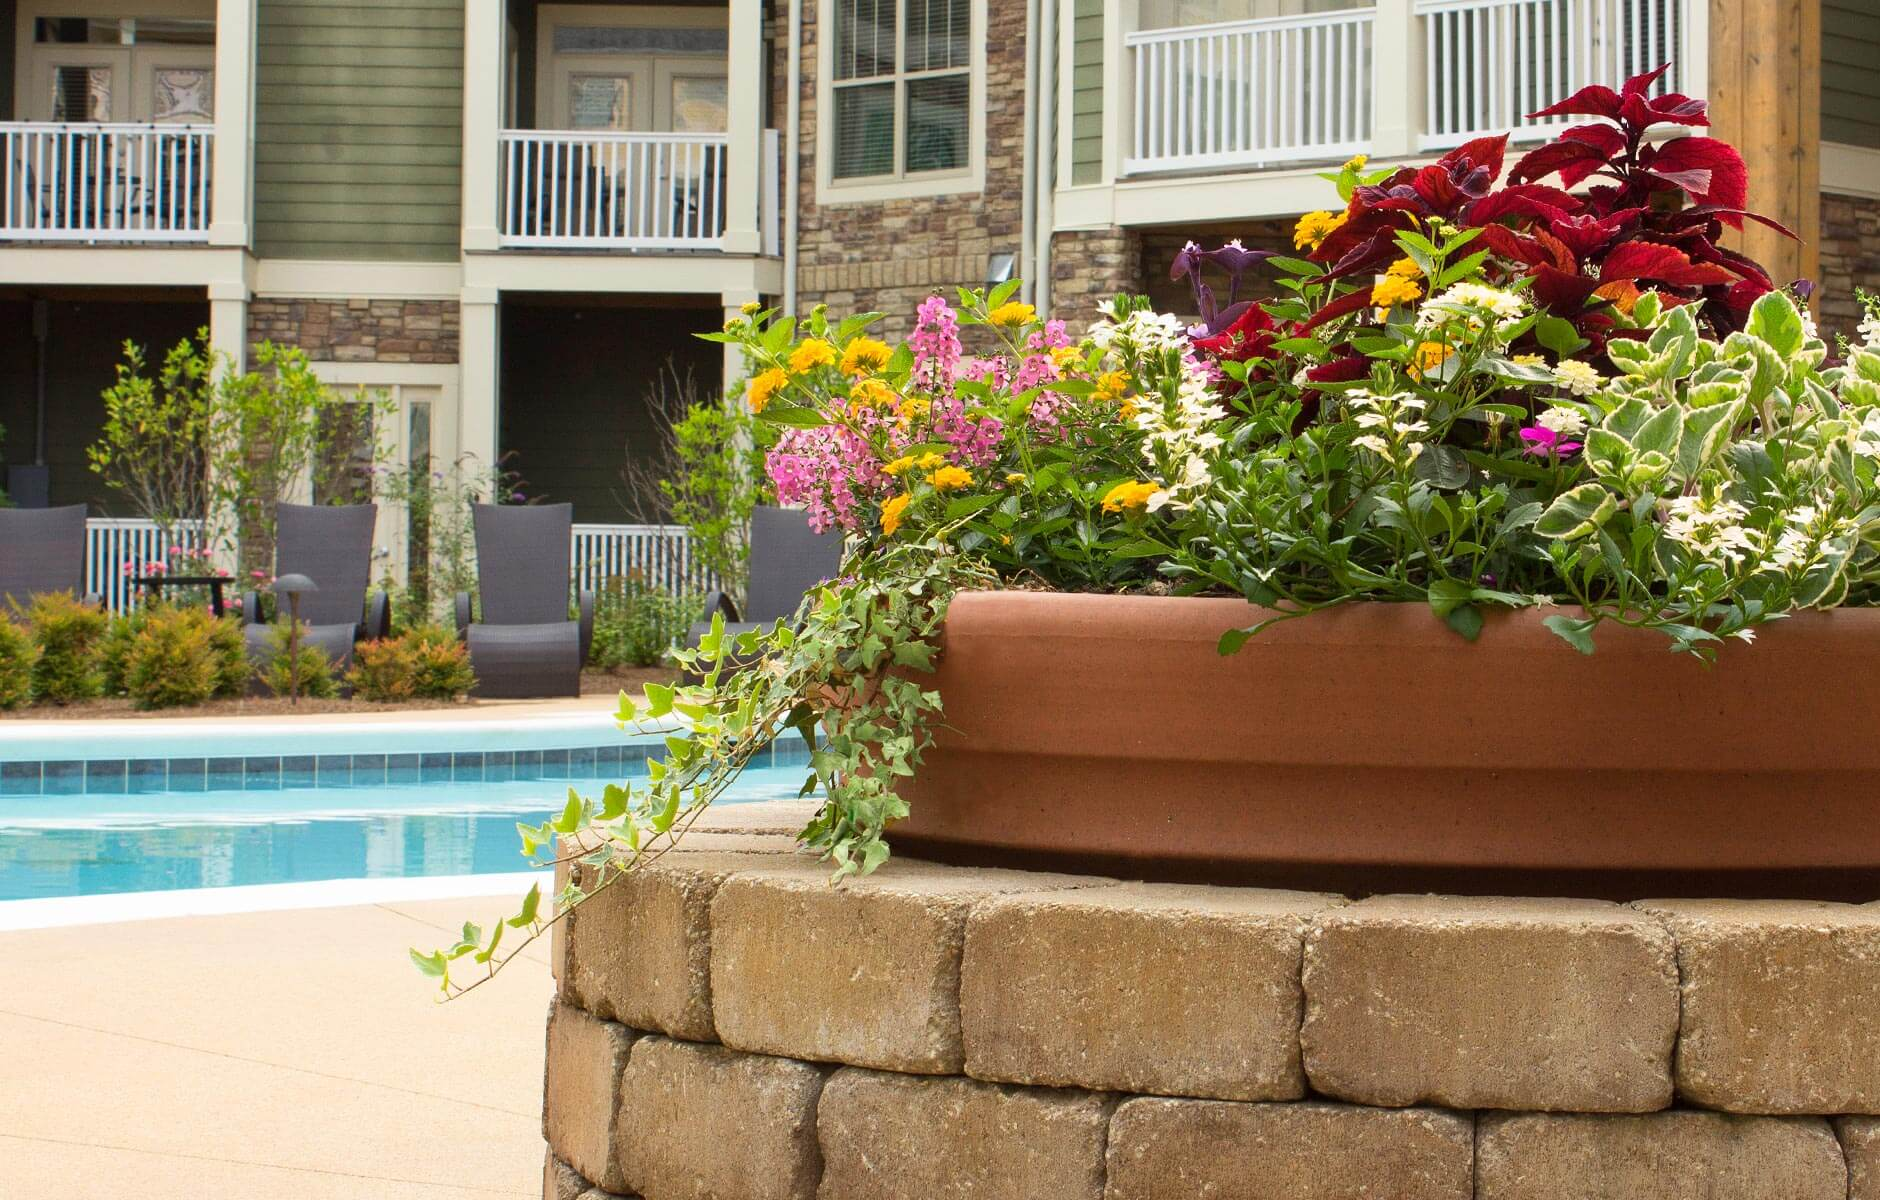 Large flower pots with unique color combinations